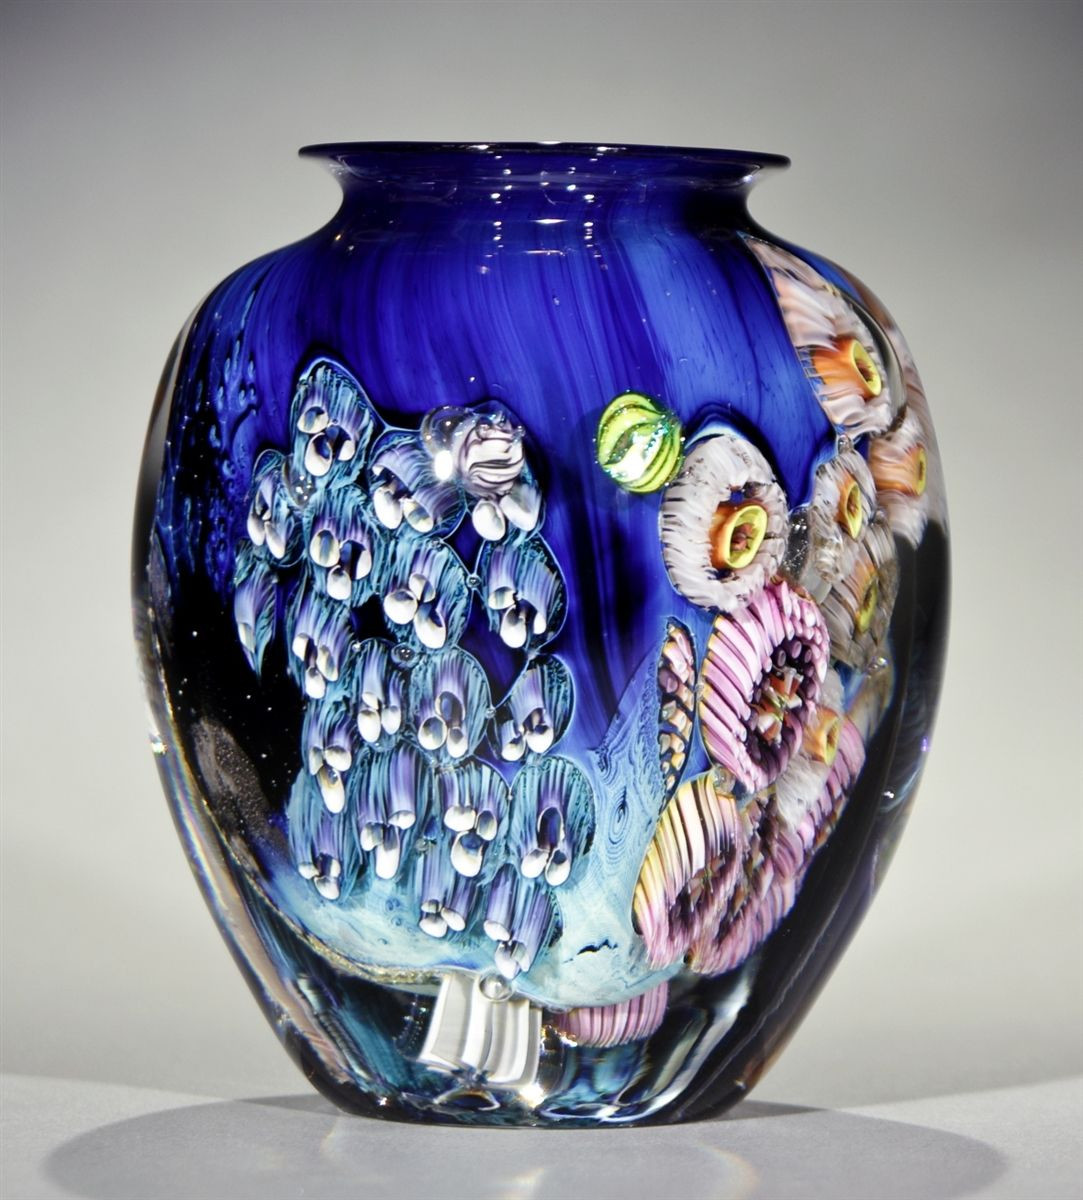 josh simpson vase of josh simpson josh simpson art glass pinterest simpsons art and for josh simpson